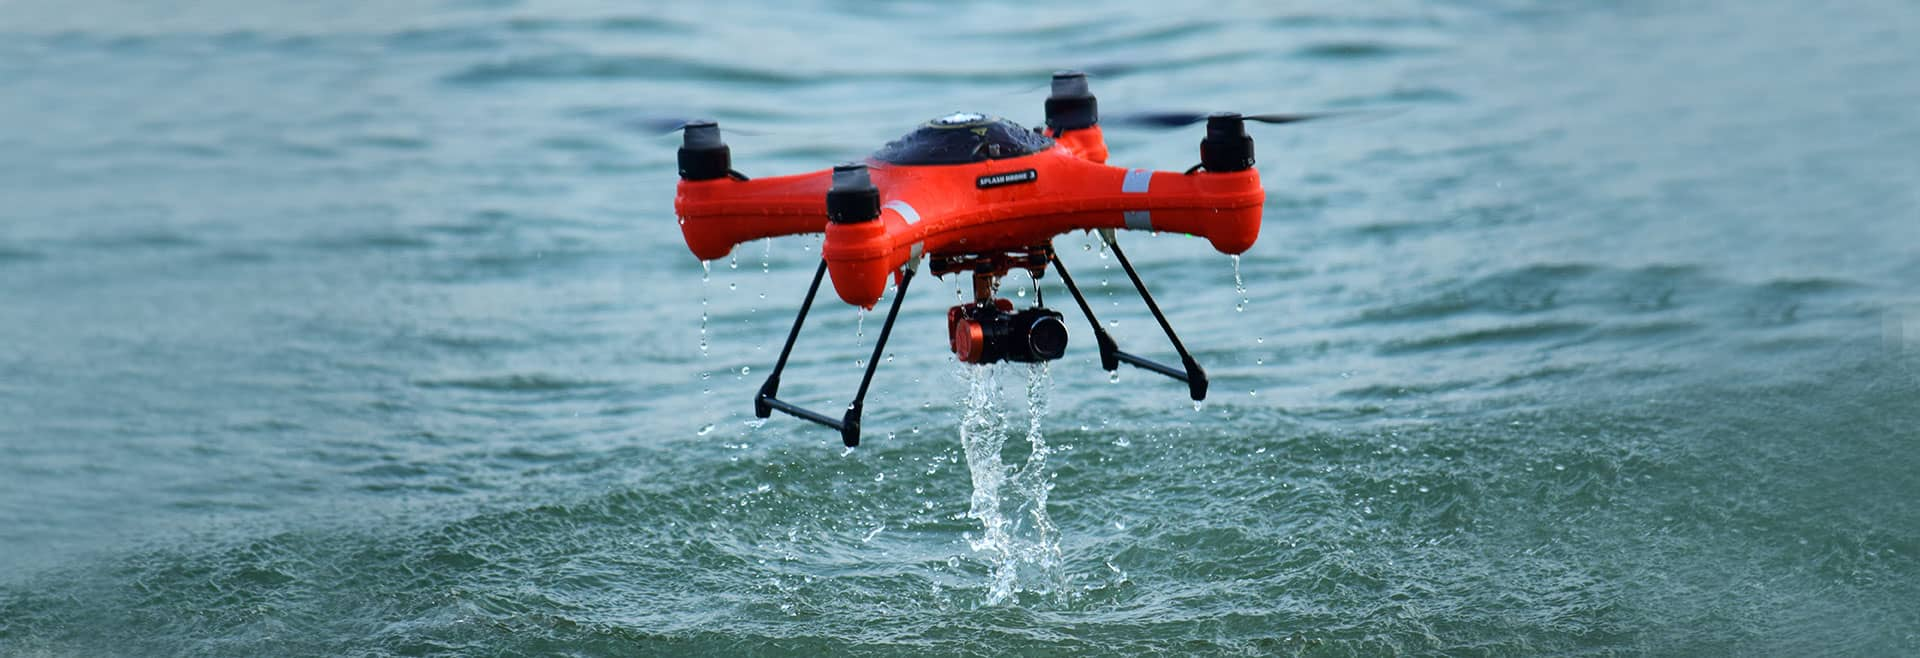 SplashDrone 3+ With PL3 Camera & Bait Release & Ground Station with FREE EXPRESS SHIPPING